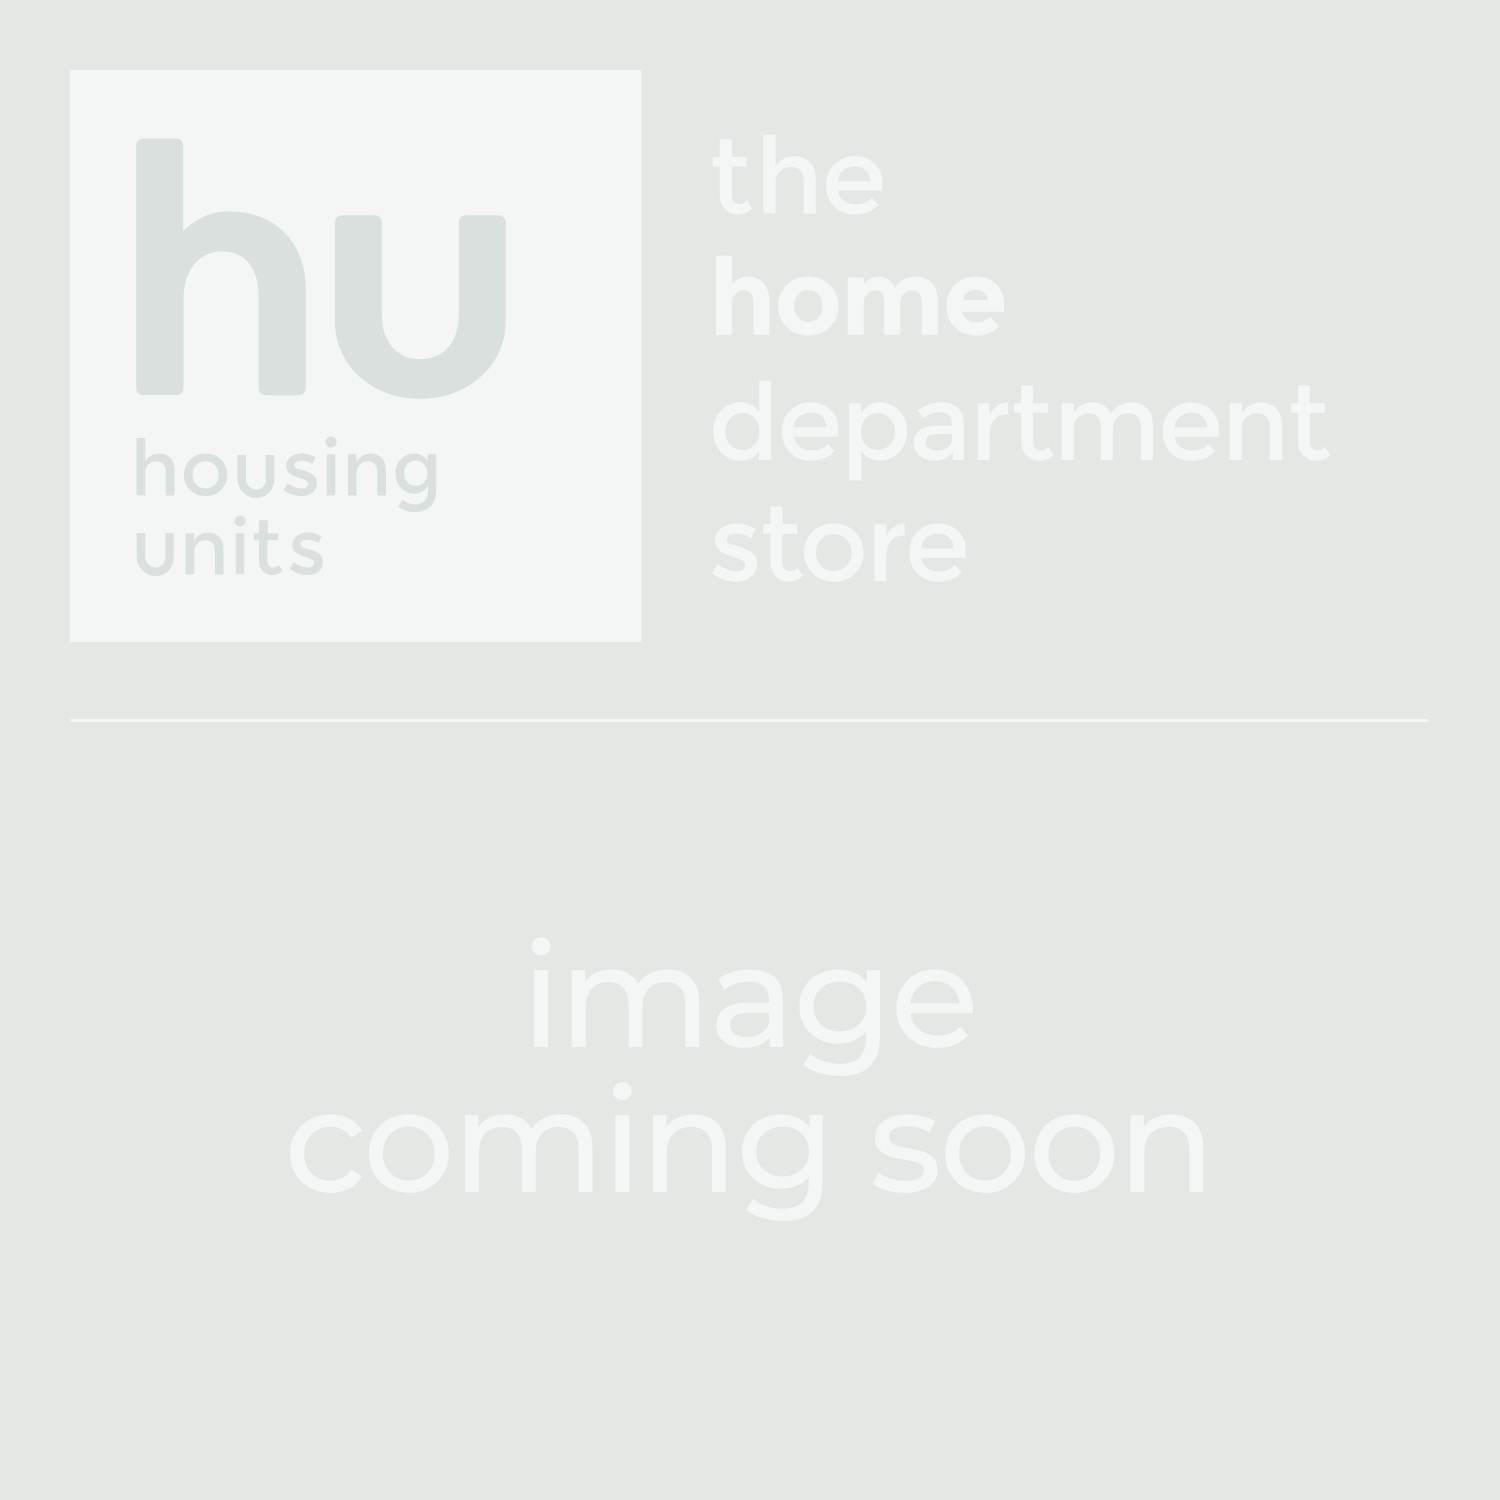 Galleria Navy Blue Rug Collection